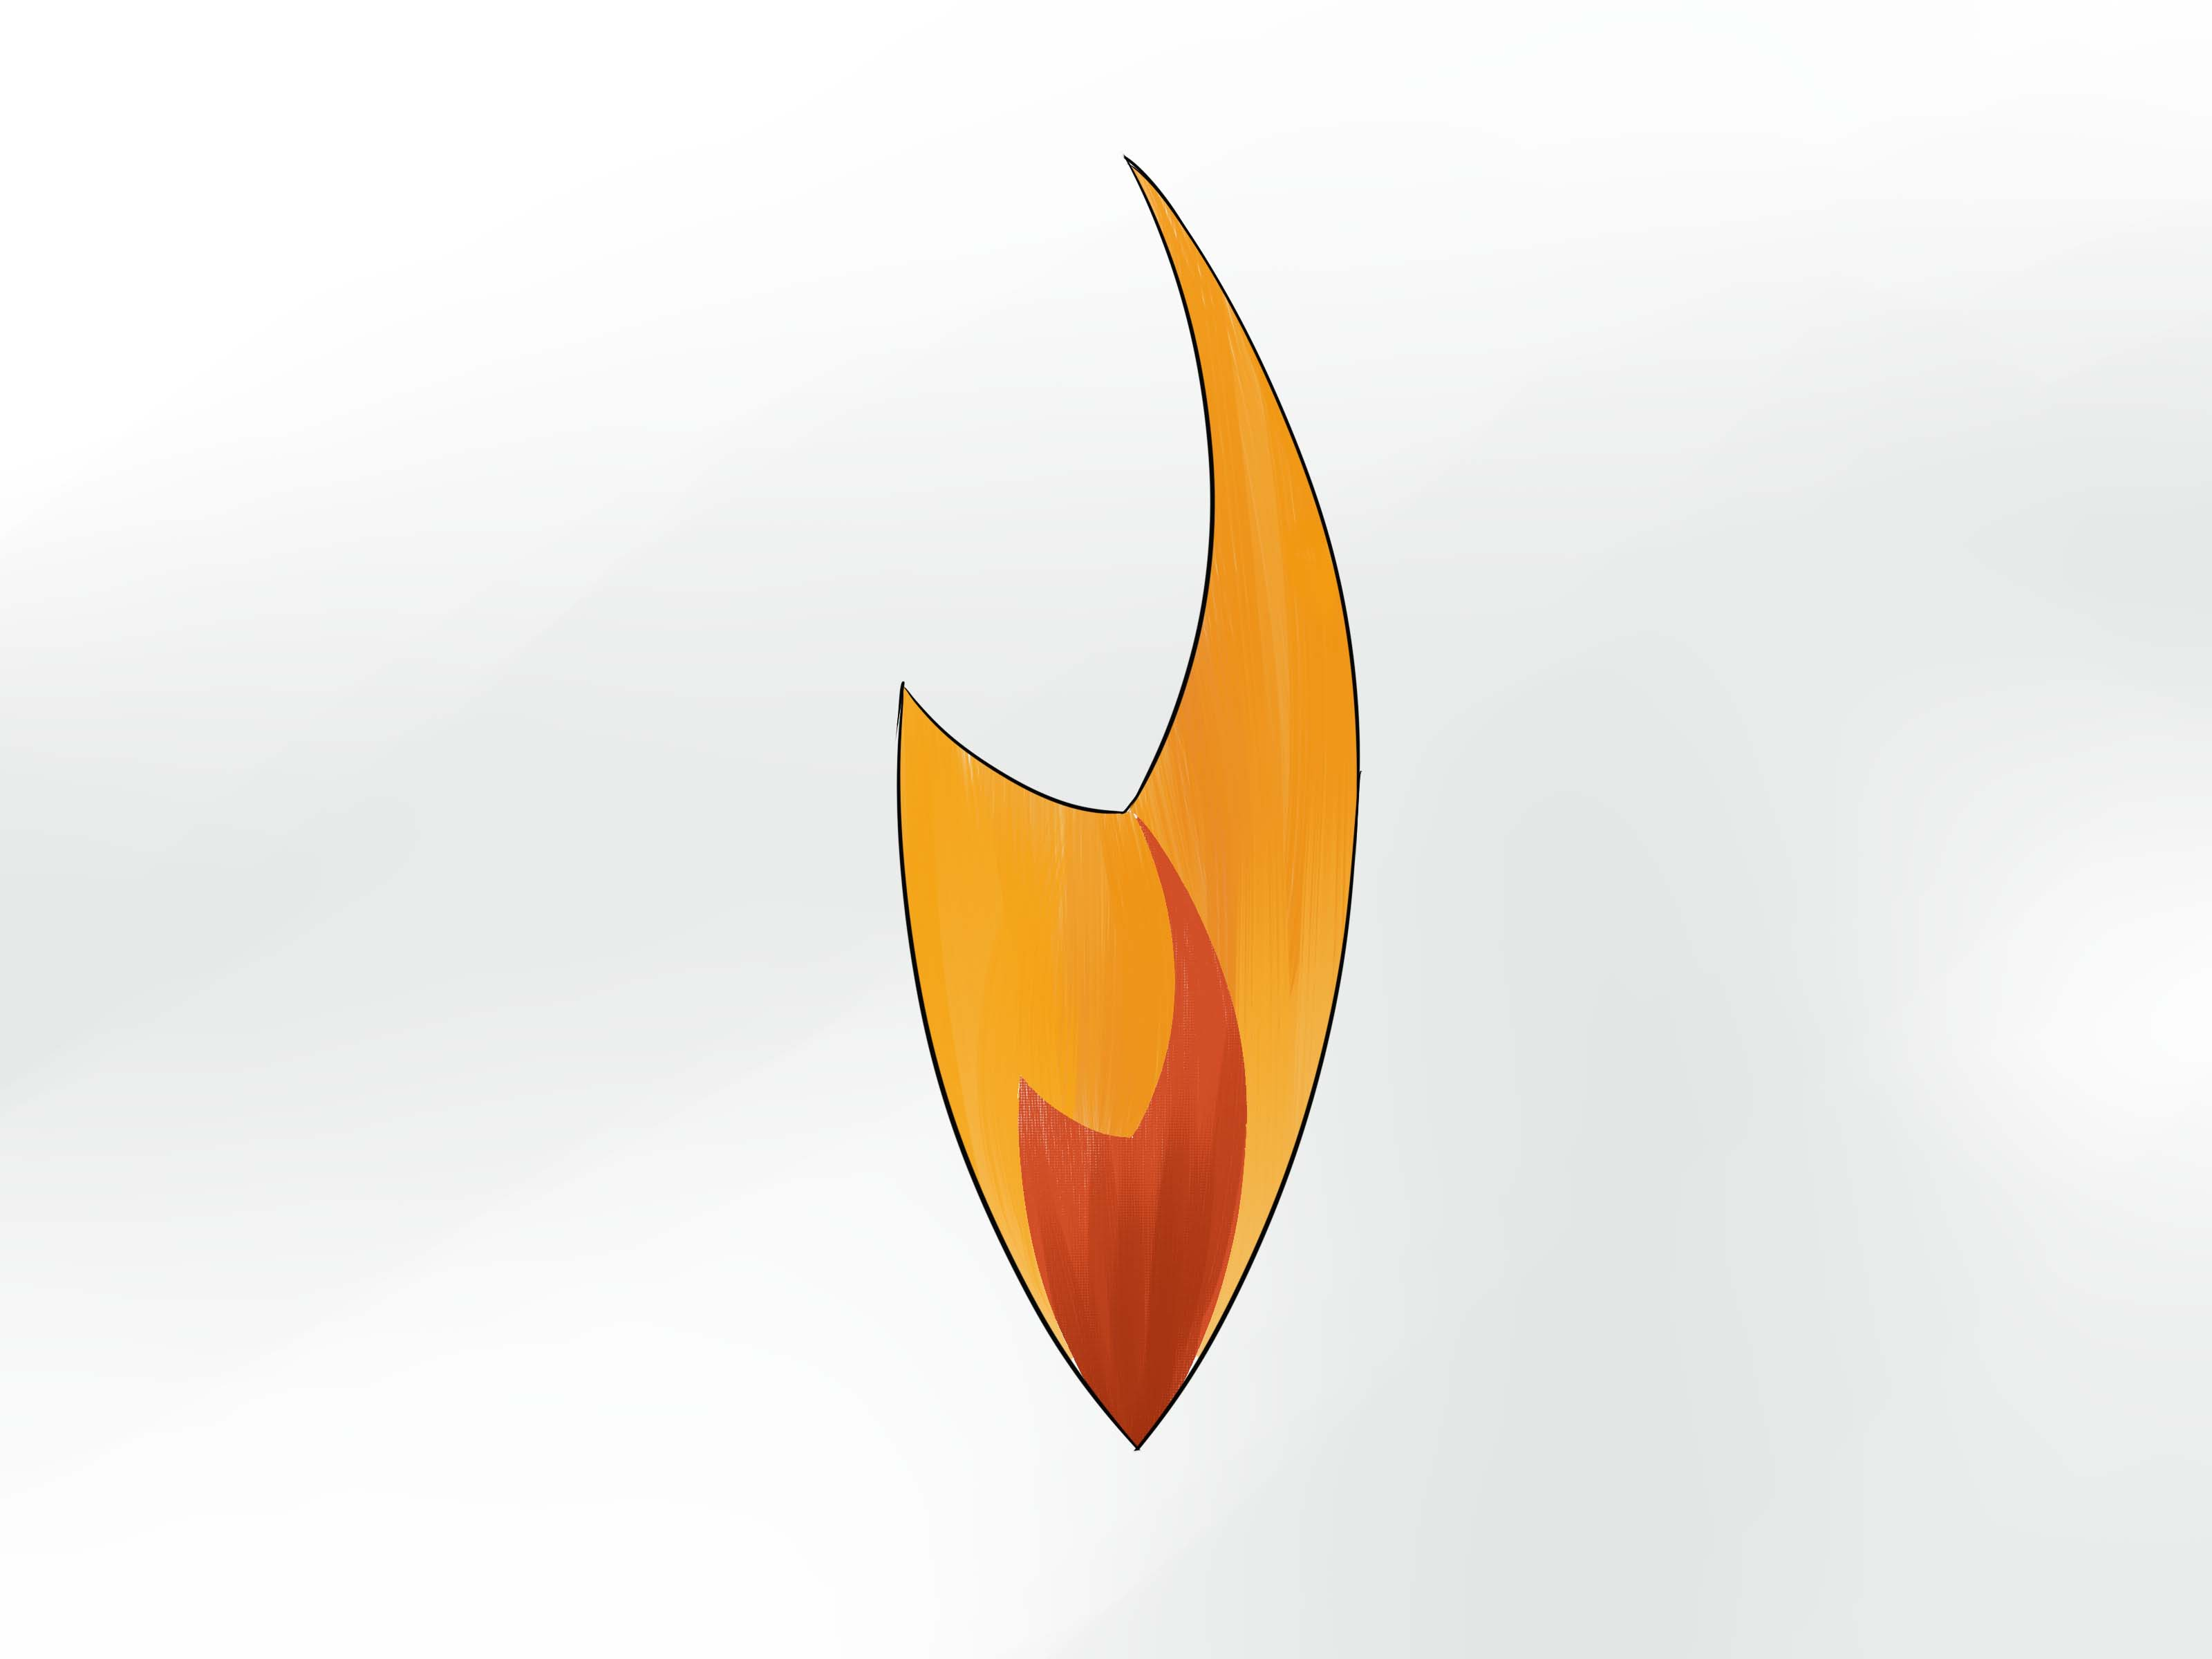 3200x2400 How To Draw A Fire Symbol 10 Steps (With Pictures)